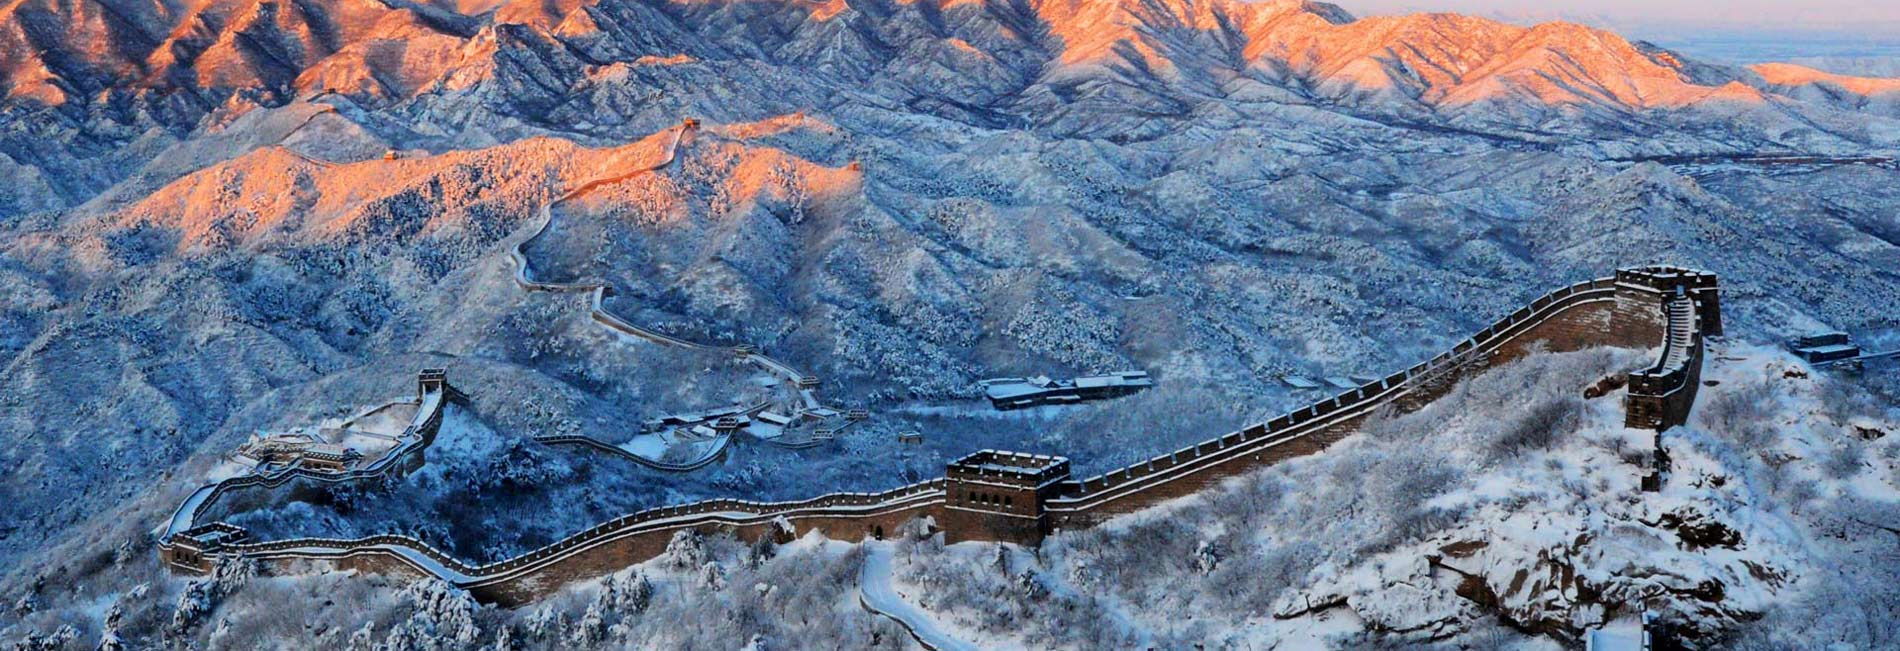 China Winter tours to Beijing: Peking Greatwall Covered by Show